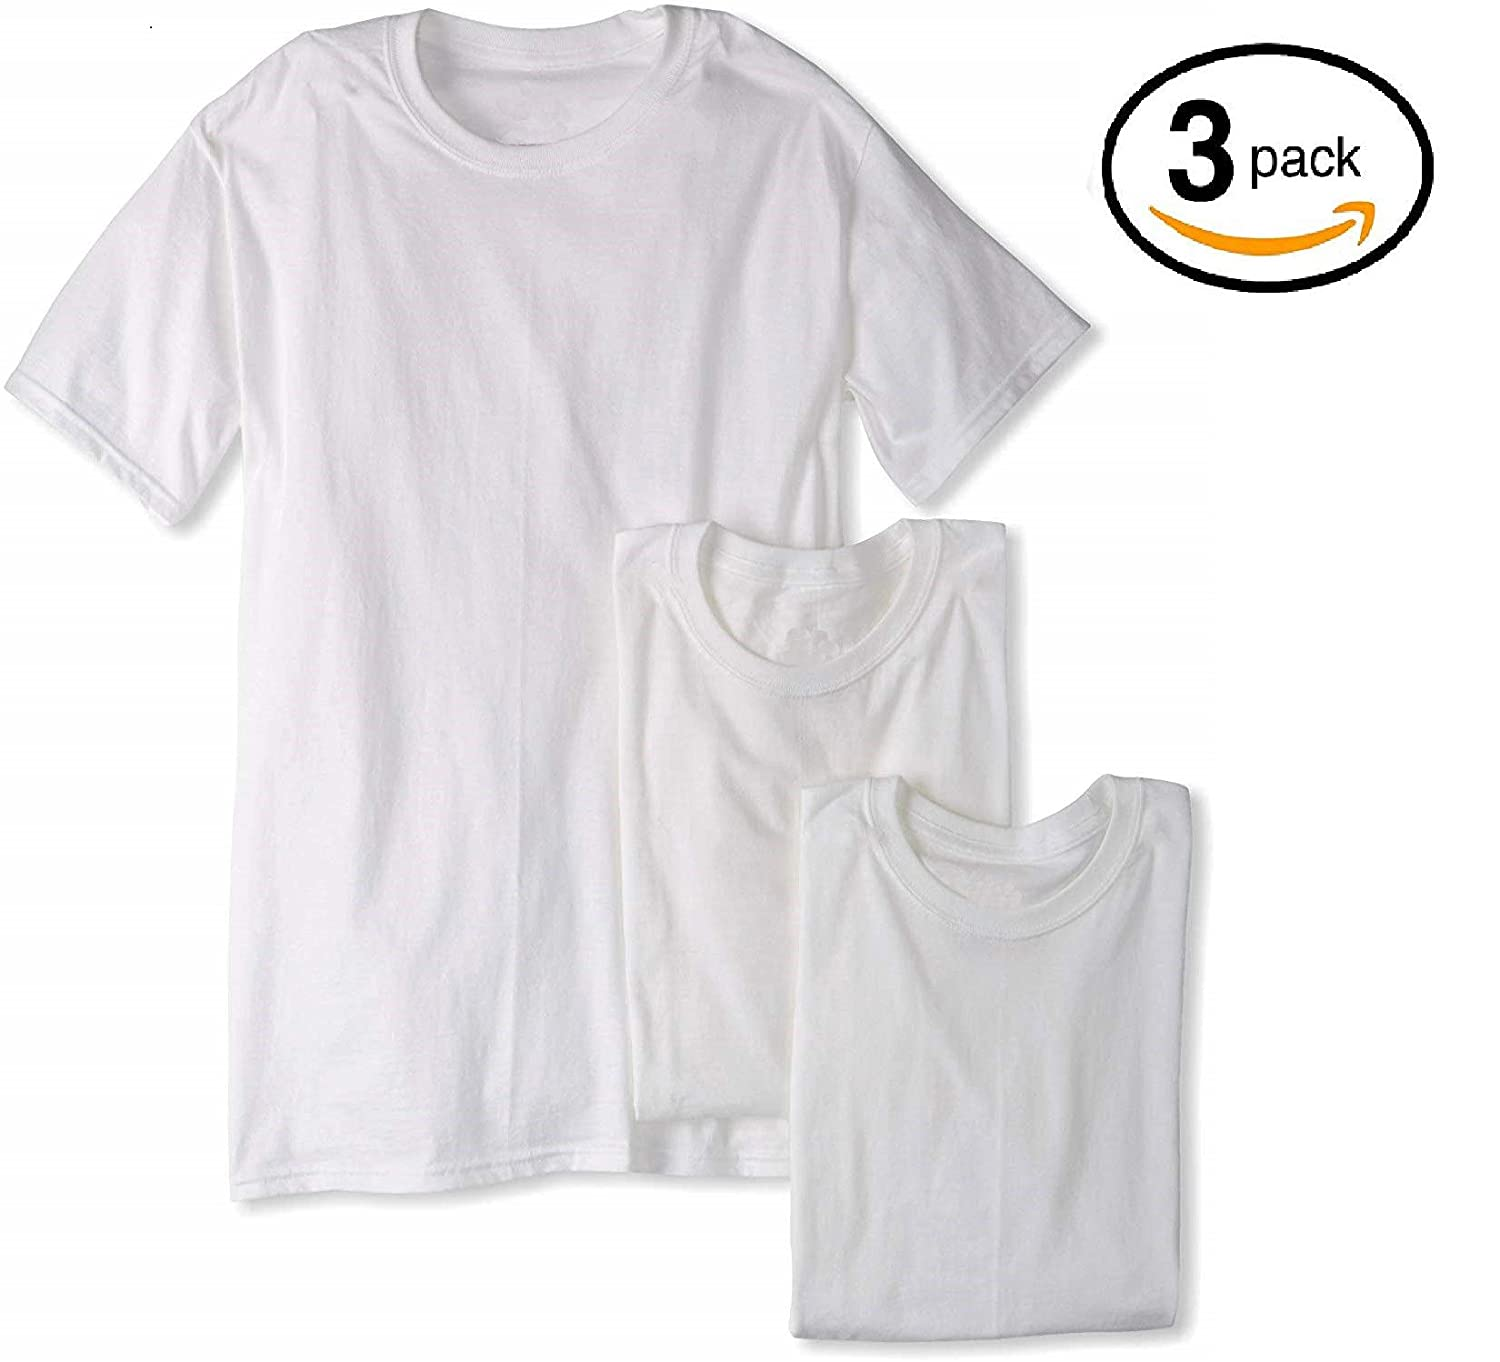 10e34f40d20 Top 10 wholesale Crew Neck Undershirt - Chinabrands.com